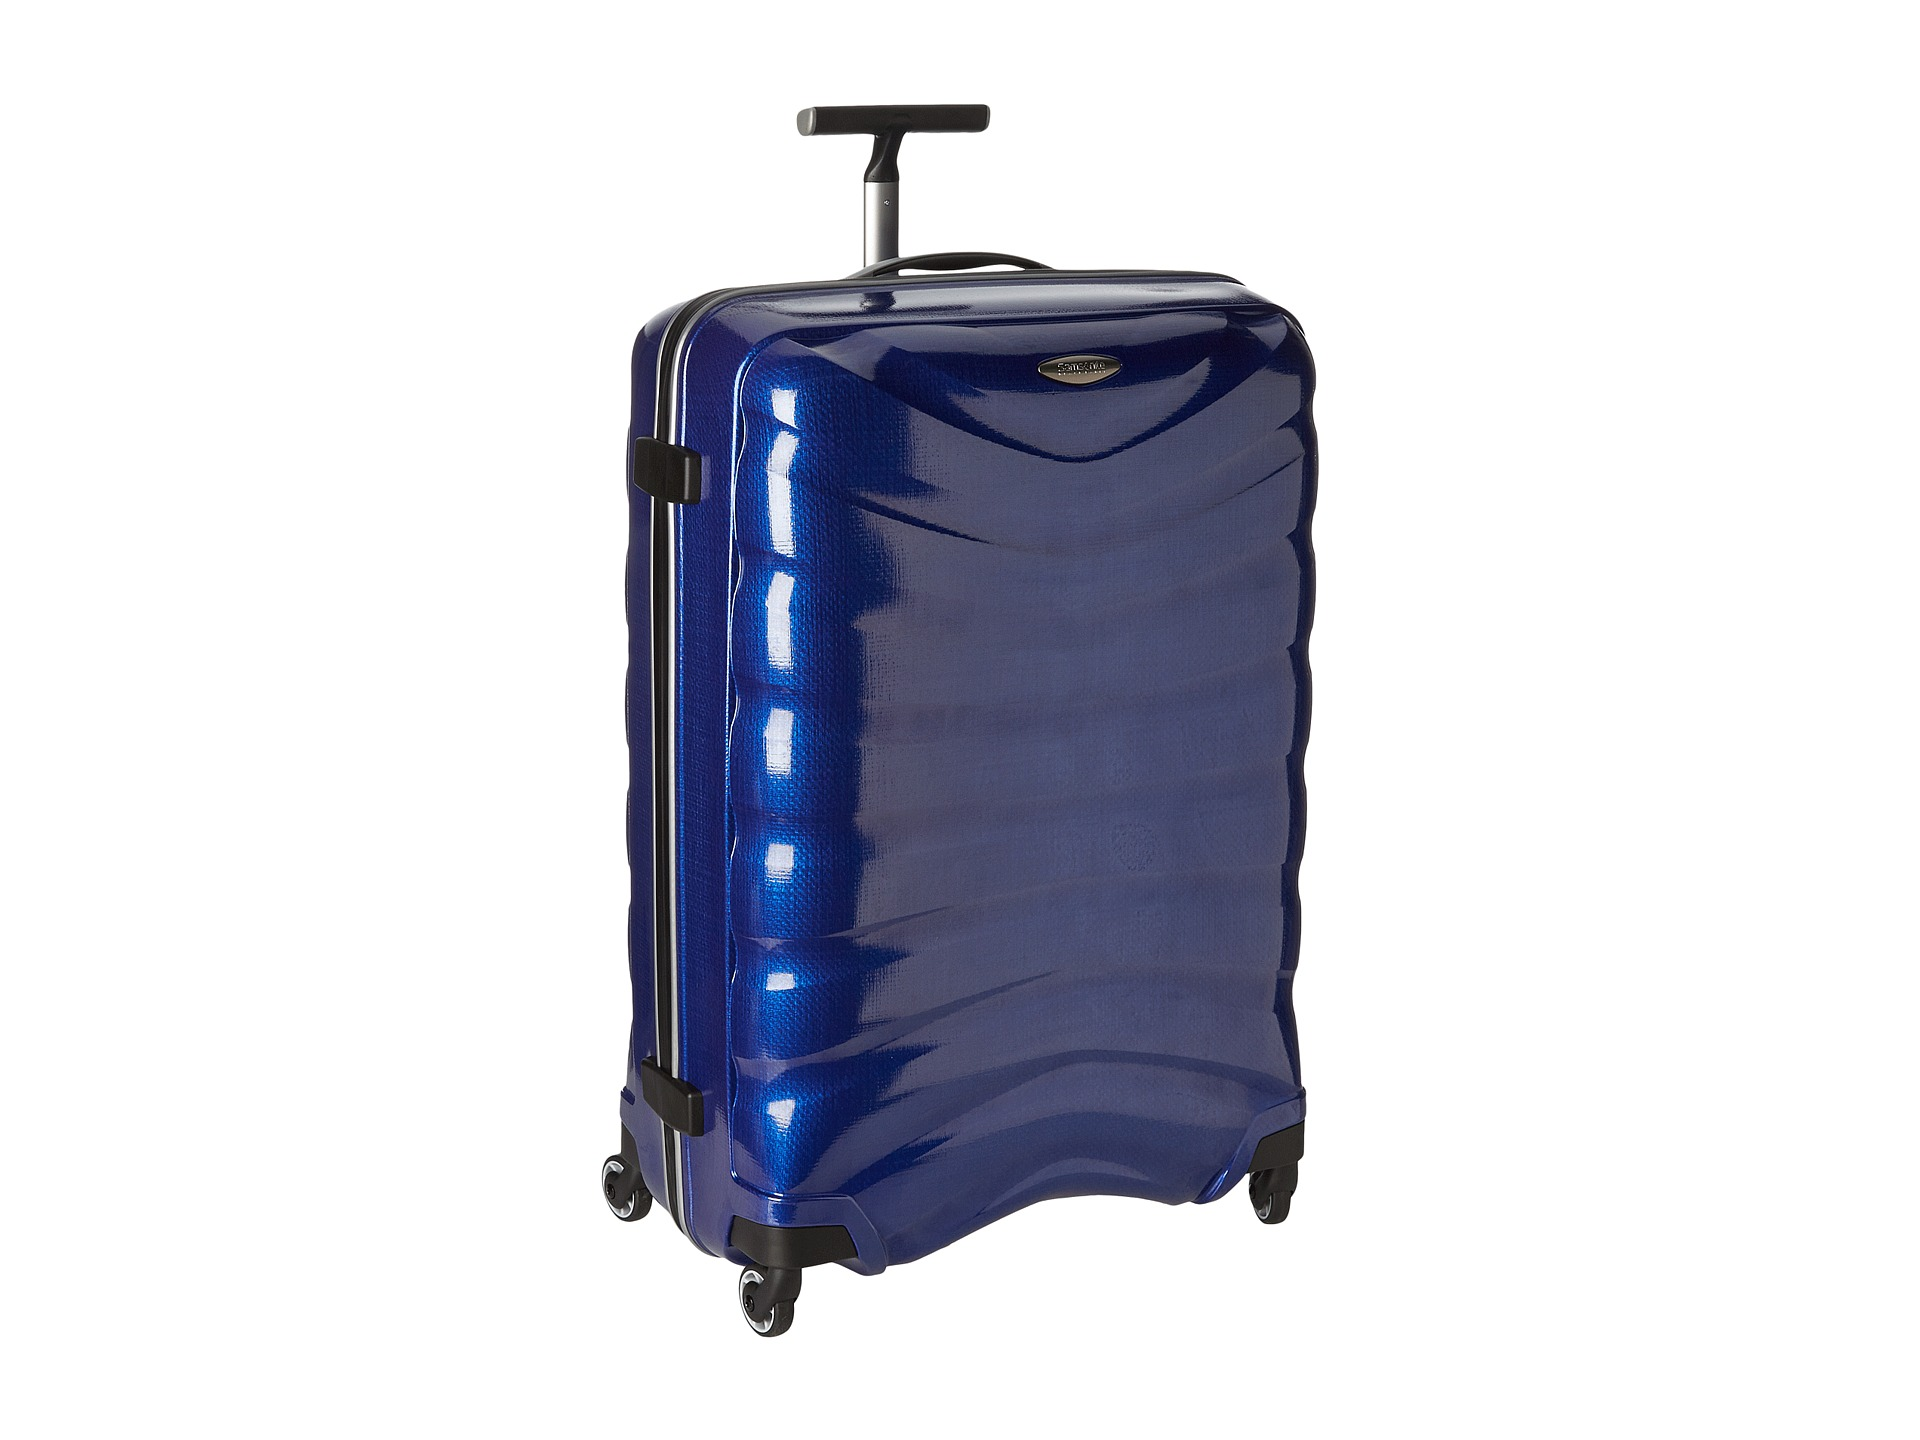 samsonite firelite spinner 75 28 bags shipped free at zappos. Black Bedroom Furniture Sets. Home Design Ideas